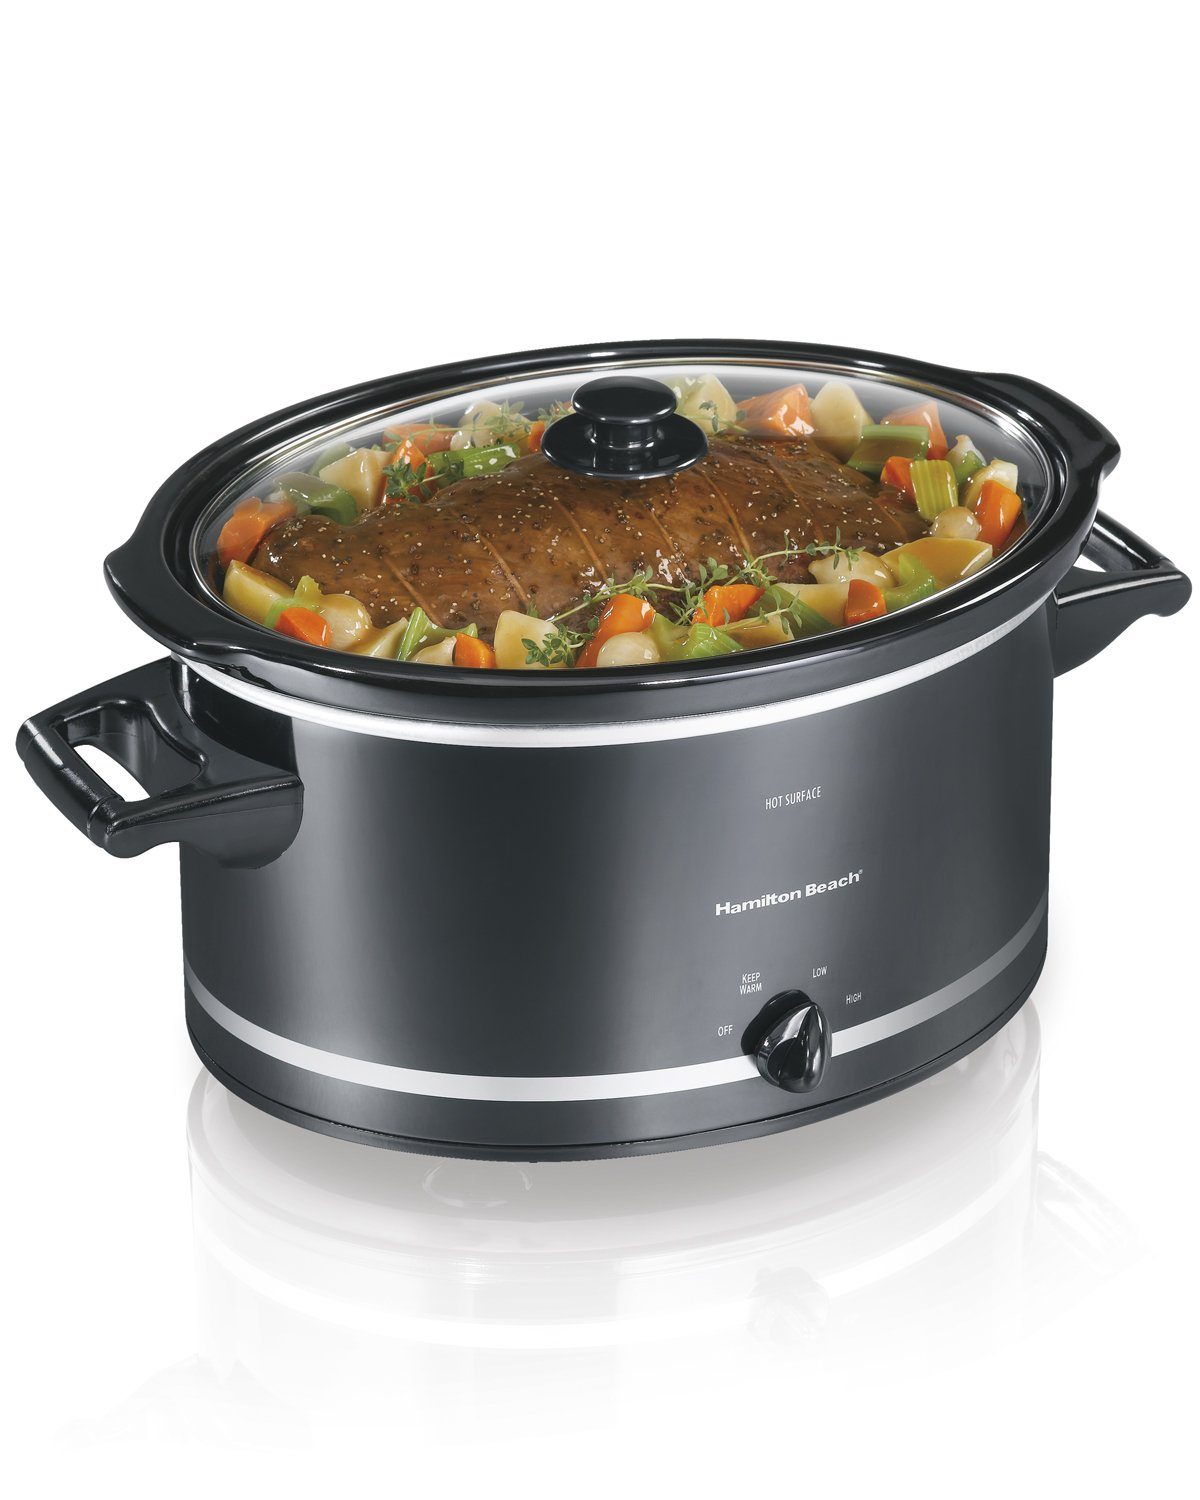 Hamilton Beach 33231 Programmable Slow Cooker, 3 Quart, Black